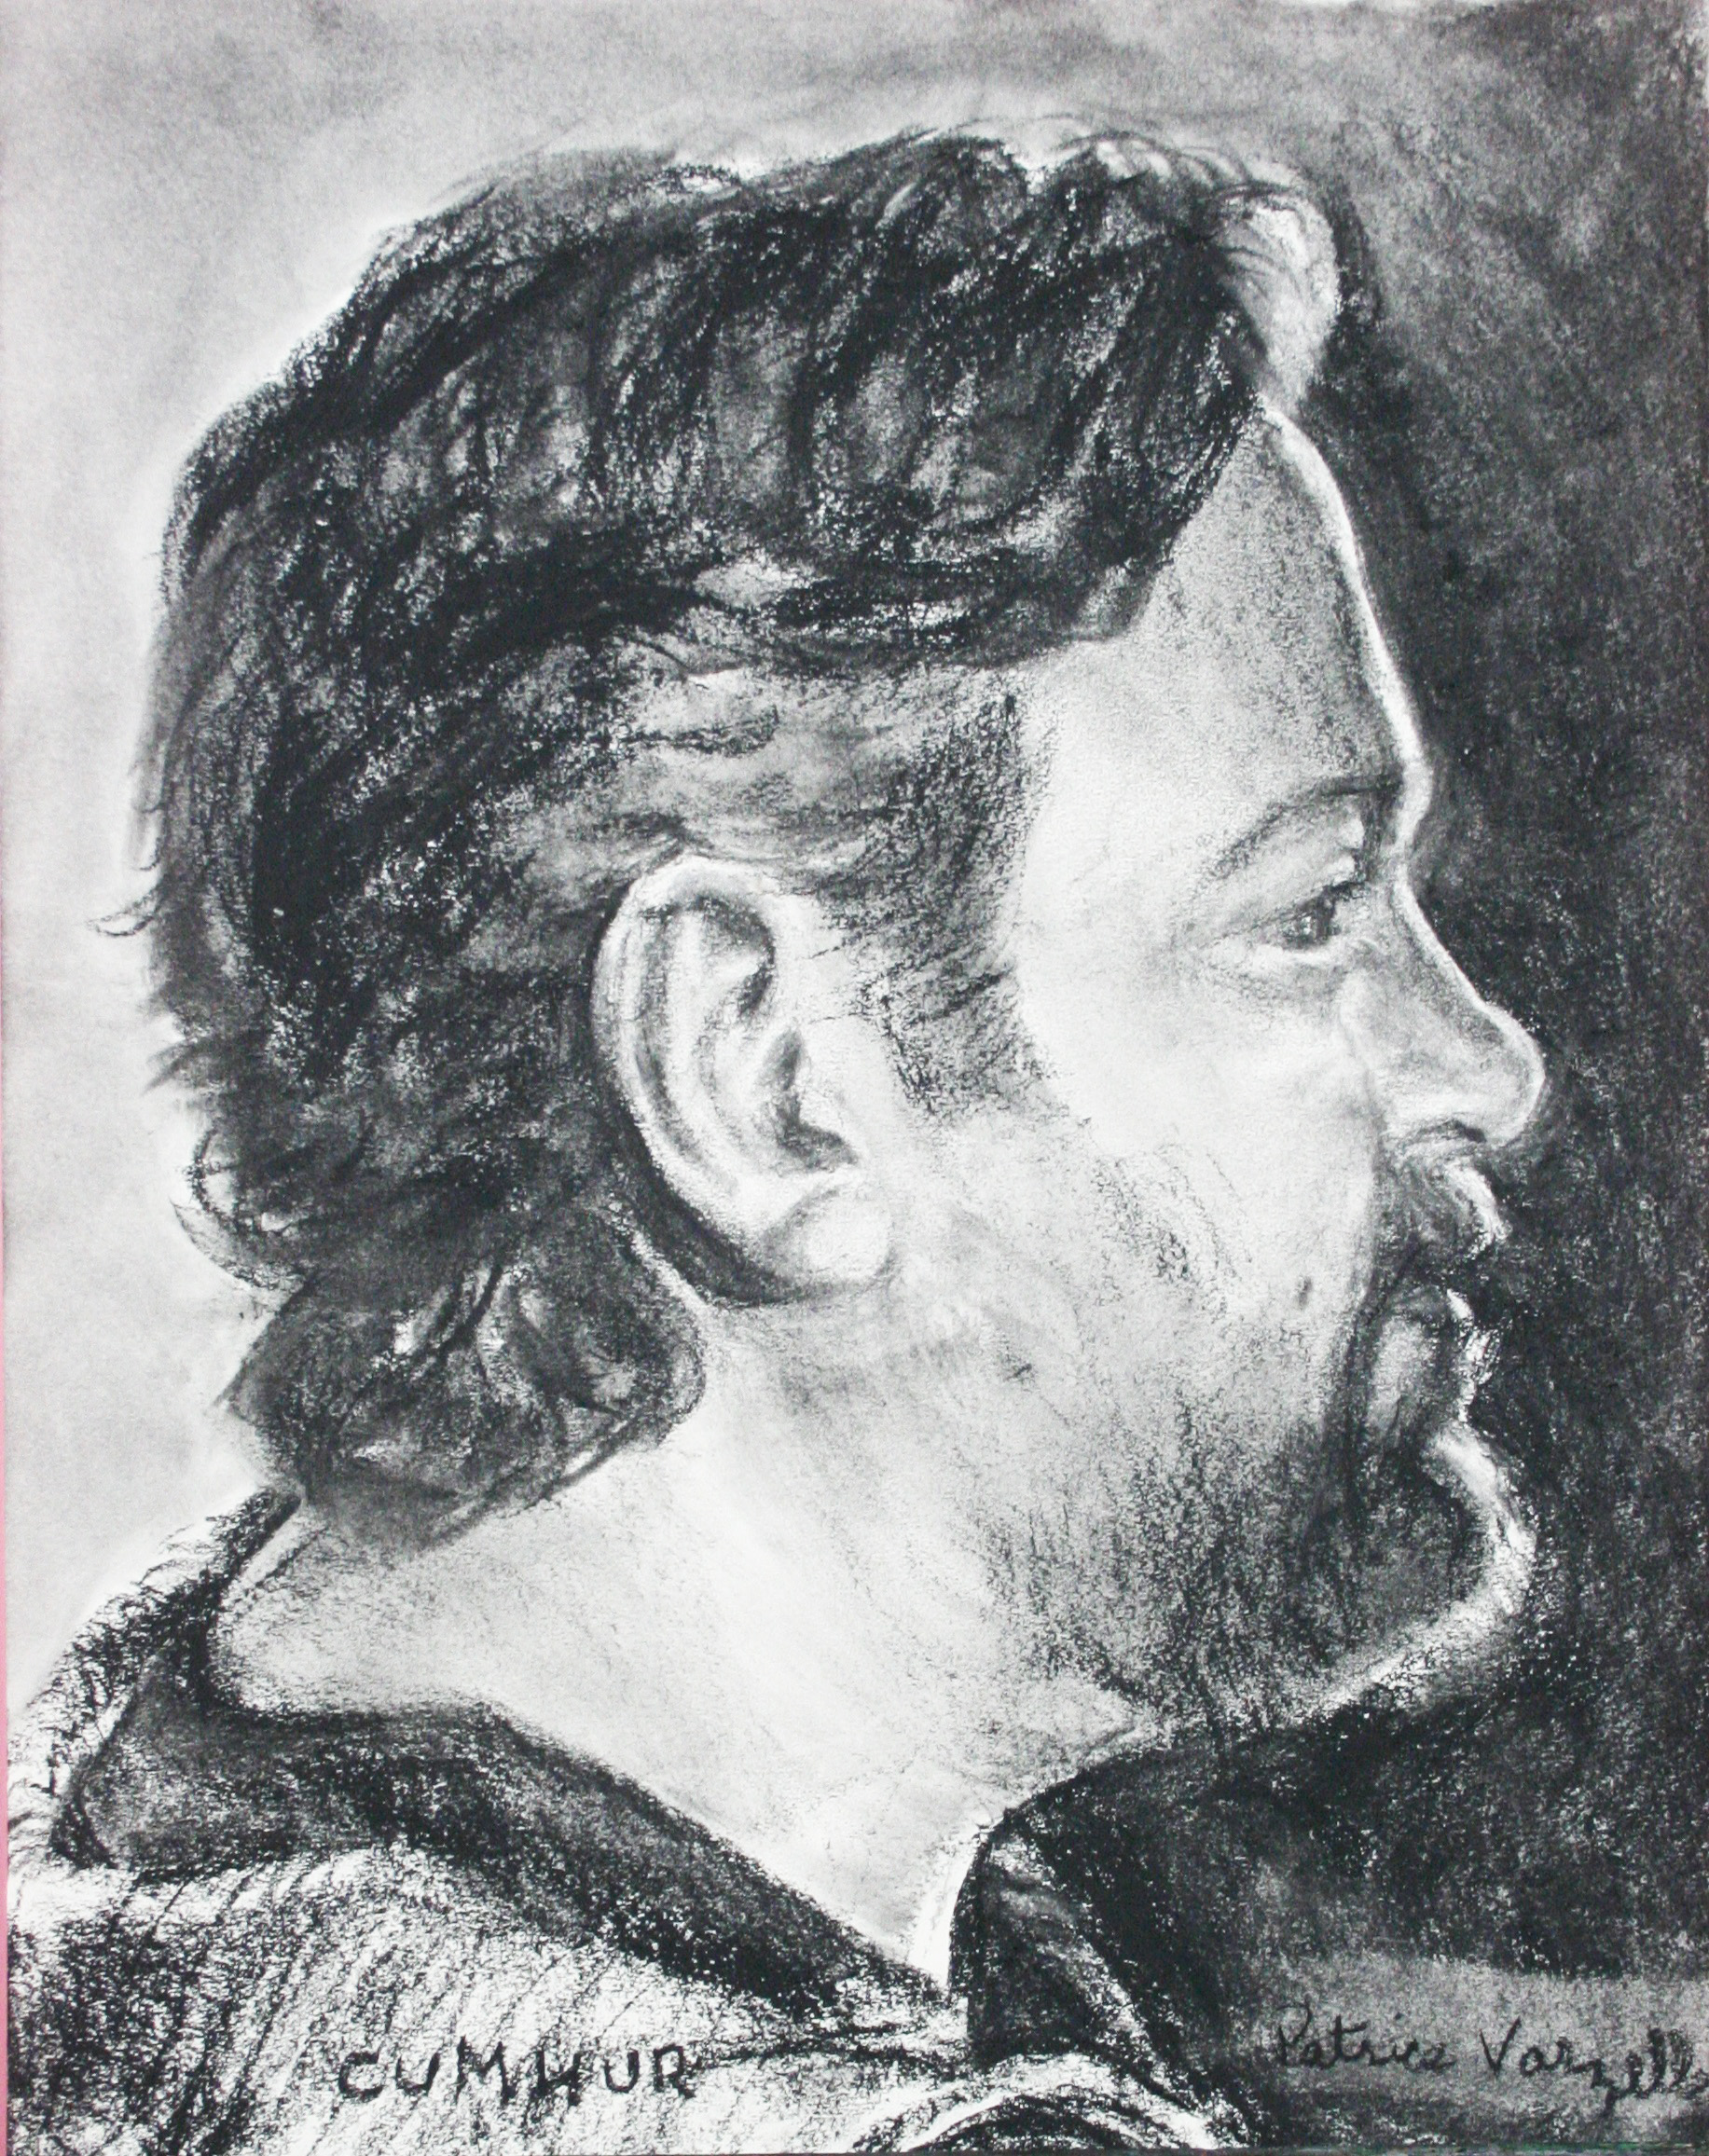 Patrice Varzelle did this 3-hour conte drawing.